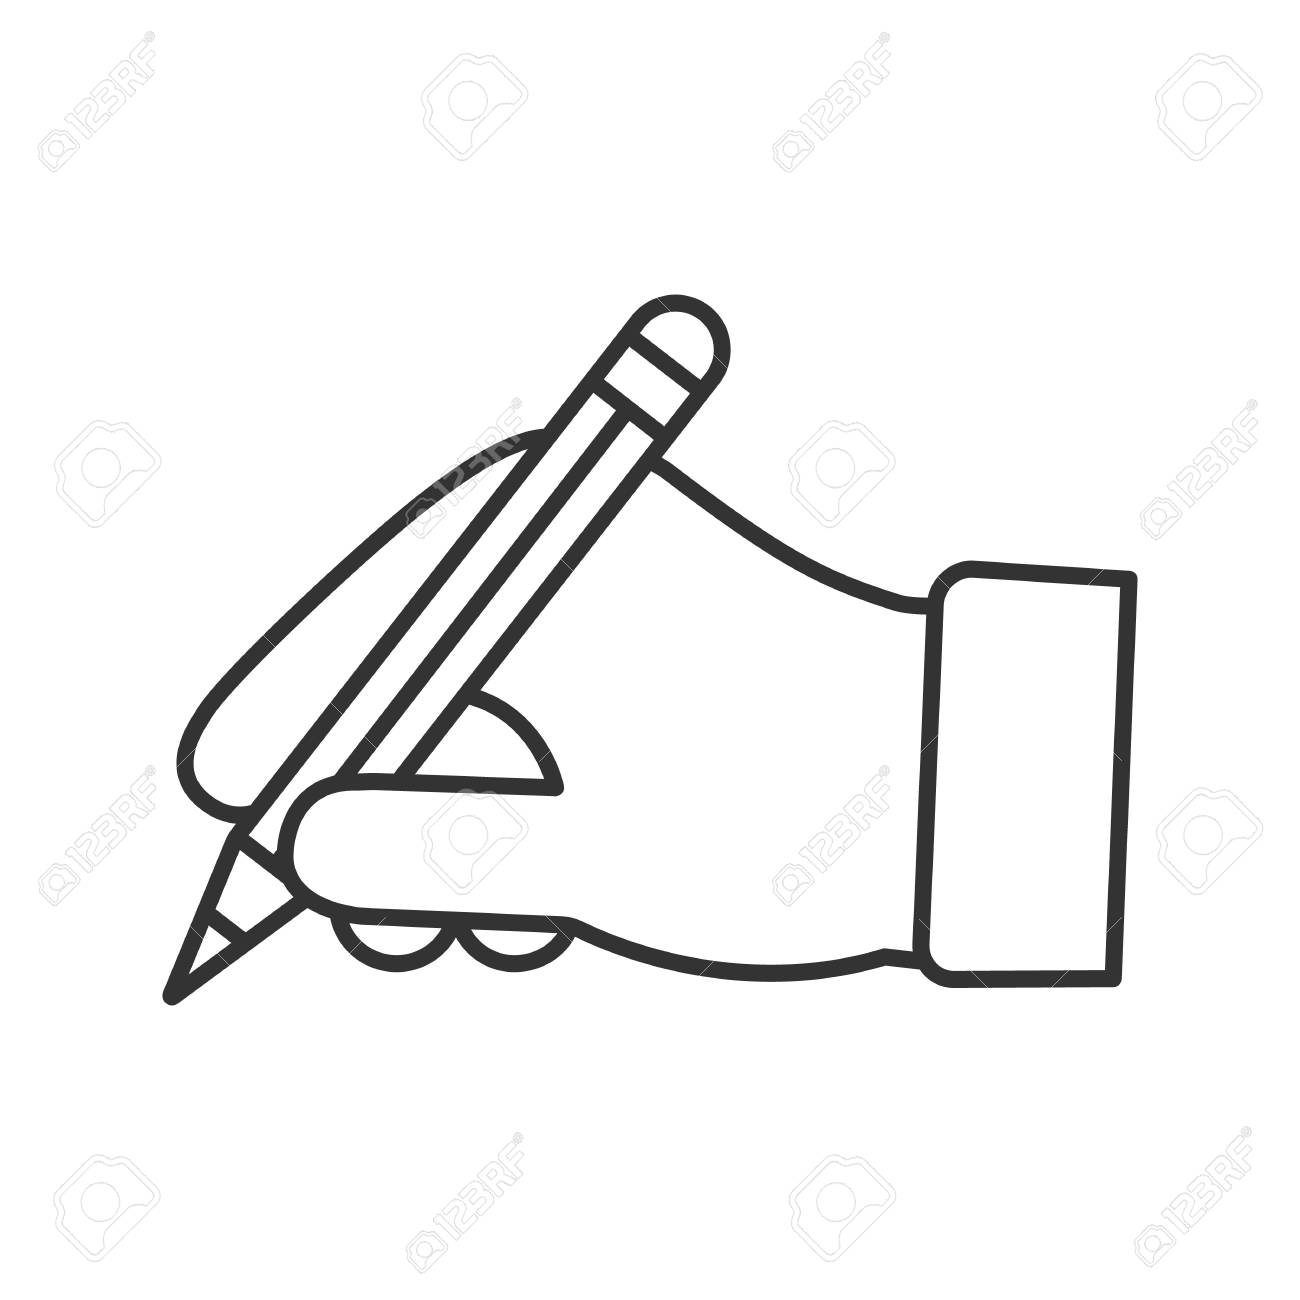 hand holding pencil linear icon thin line illustration handwriting royalty free cliparts vectors and stock illustration image 106249883